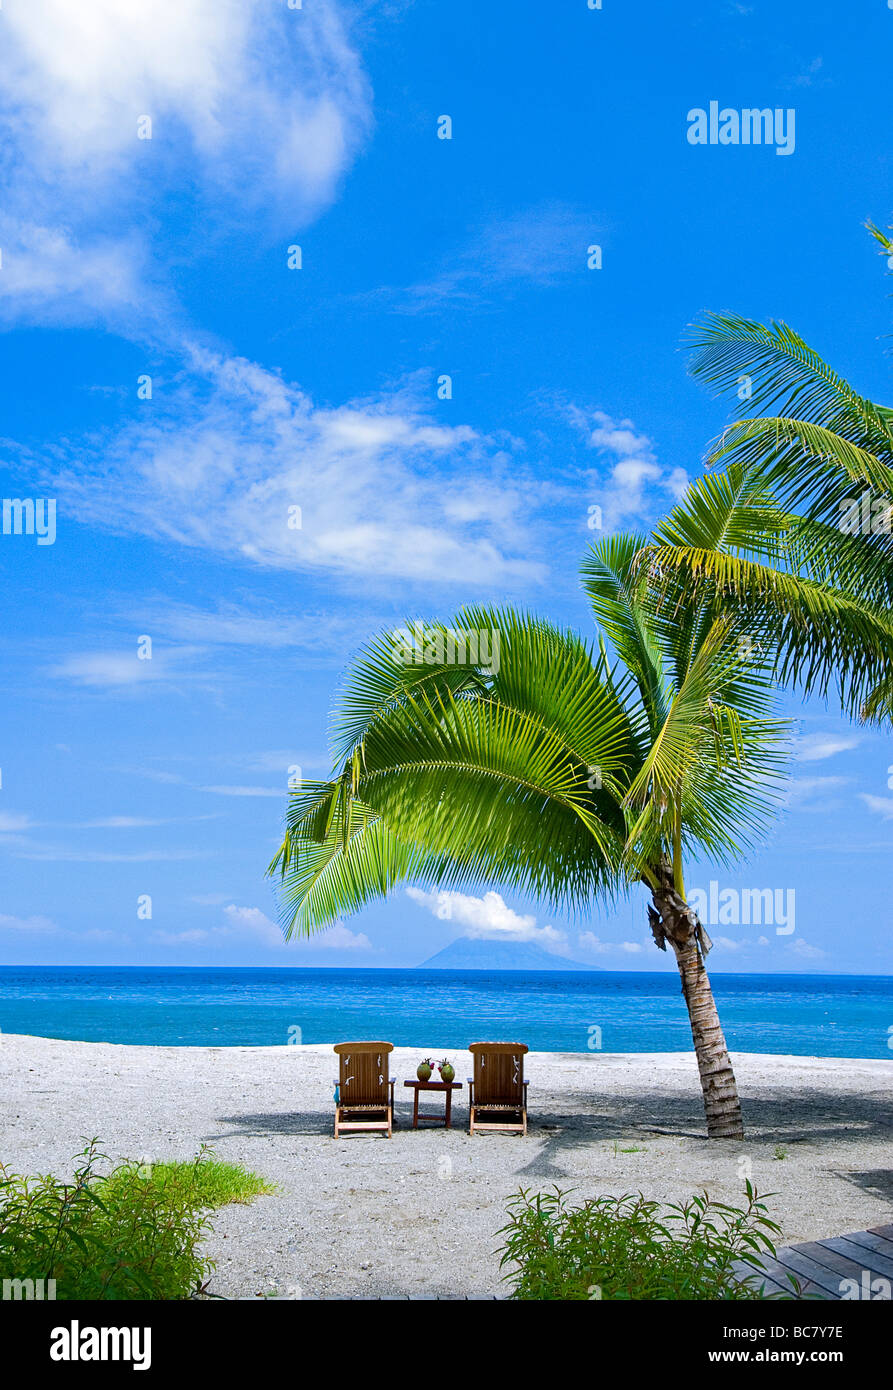 Two sunloungers on the beach under a palm tree in a Tropical Resort, Indonesia - Stock Image